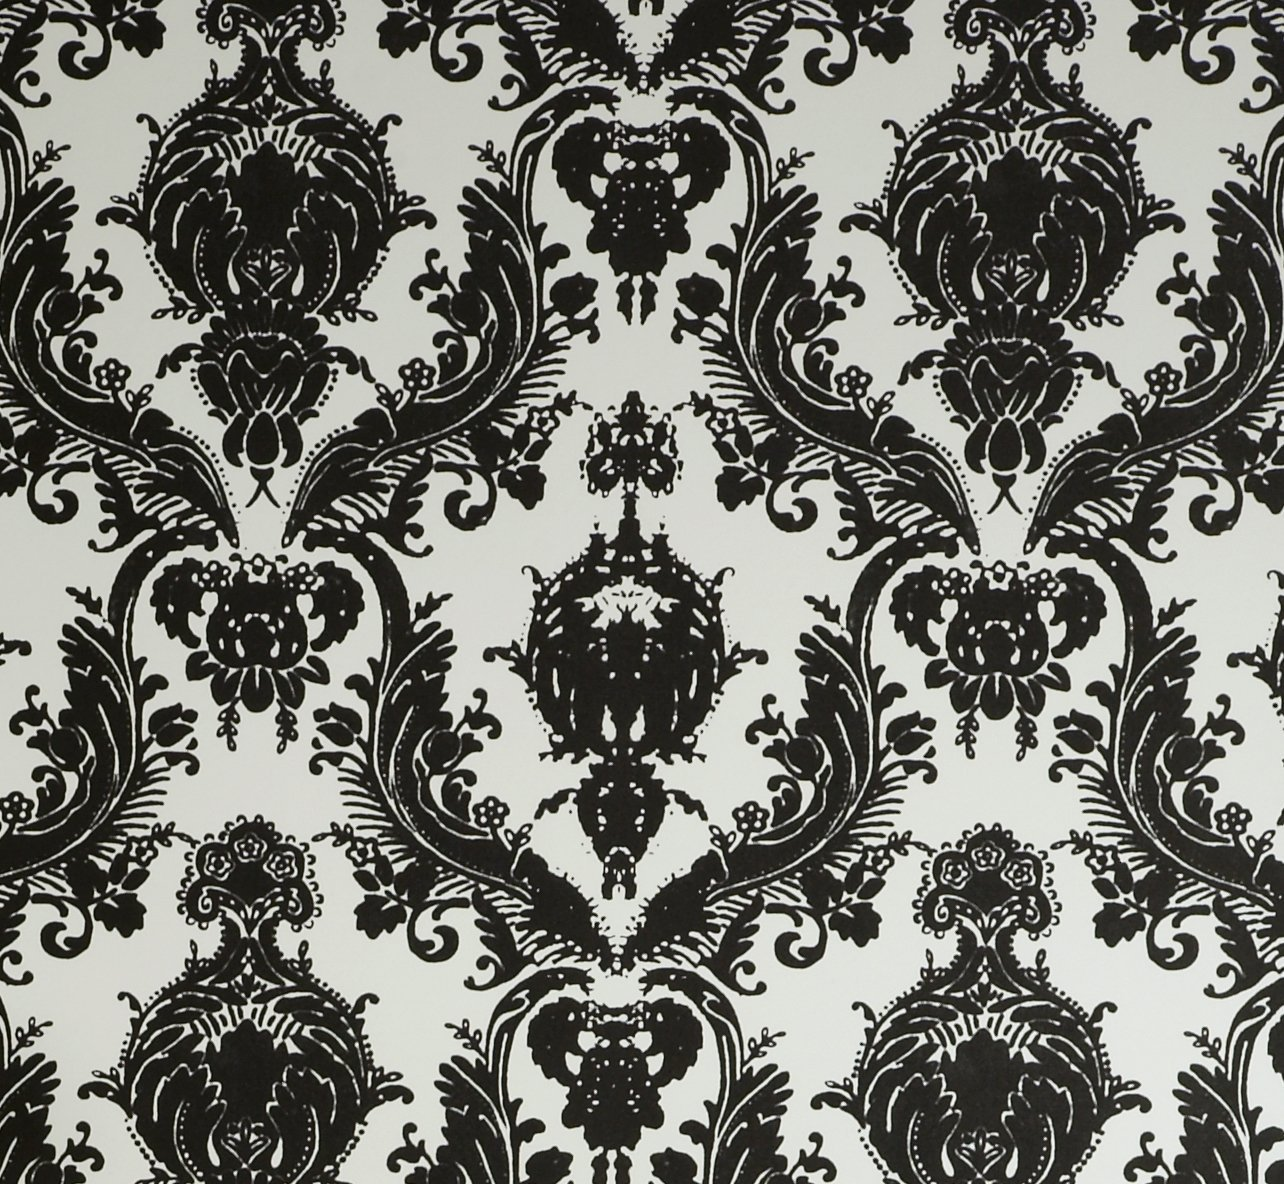 45042f31a Vintage Black Wallpaper iPhone Wallpaper Vintage Wallpapers 1284x1184